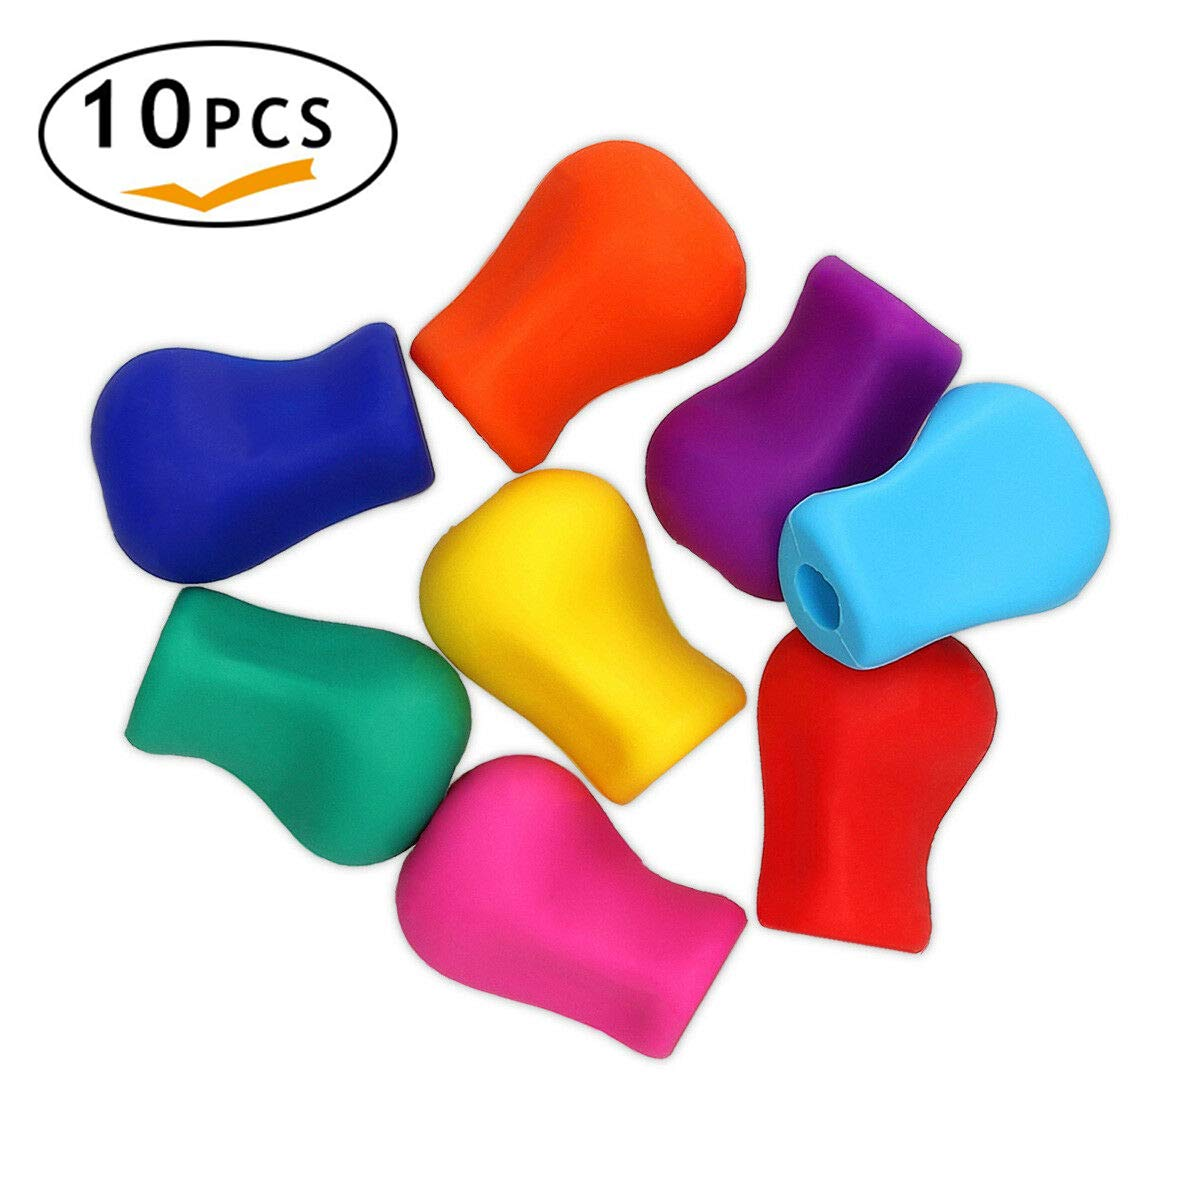 Pencil Grips,Set of 10 Jingleer Pencil and Pen Grips for Children and Adults, Pencil Finger Grips Holder Writing Correction Tool Handwring Aid for Left Handed and Right Handed Users